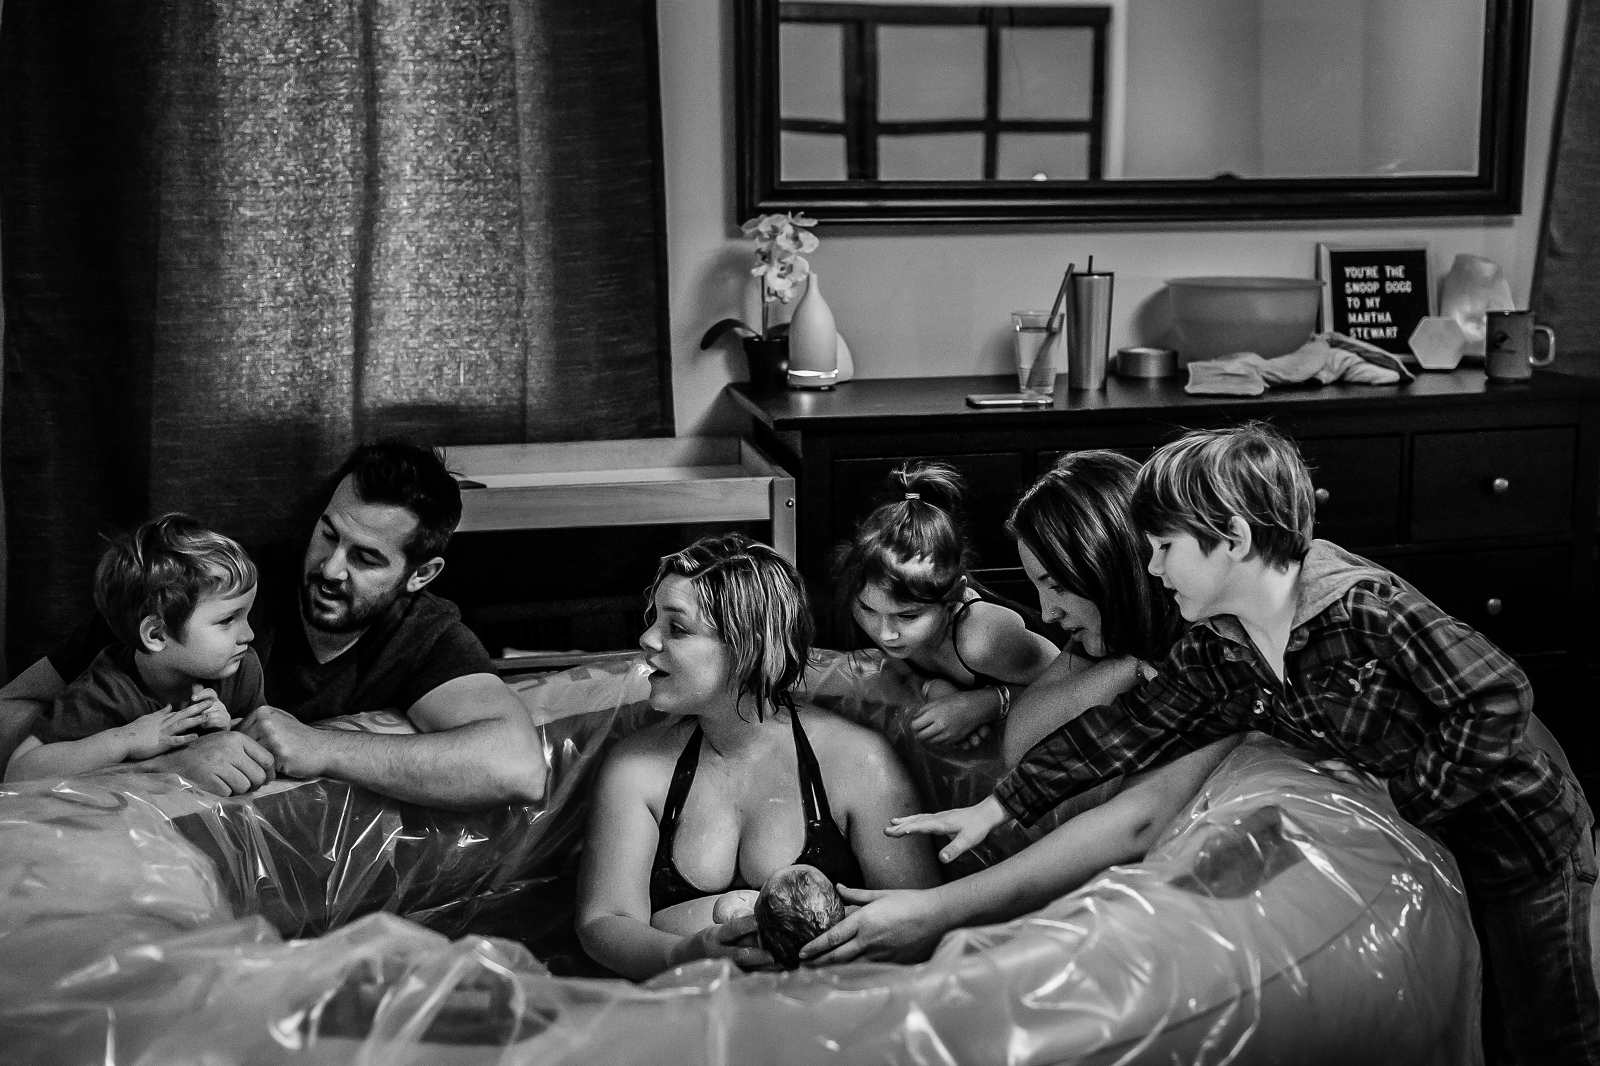 edmonton birth photographer captures entire family welcoming their newborn daughter at their edmonton home waterbirth supported by Hope midwfery